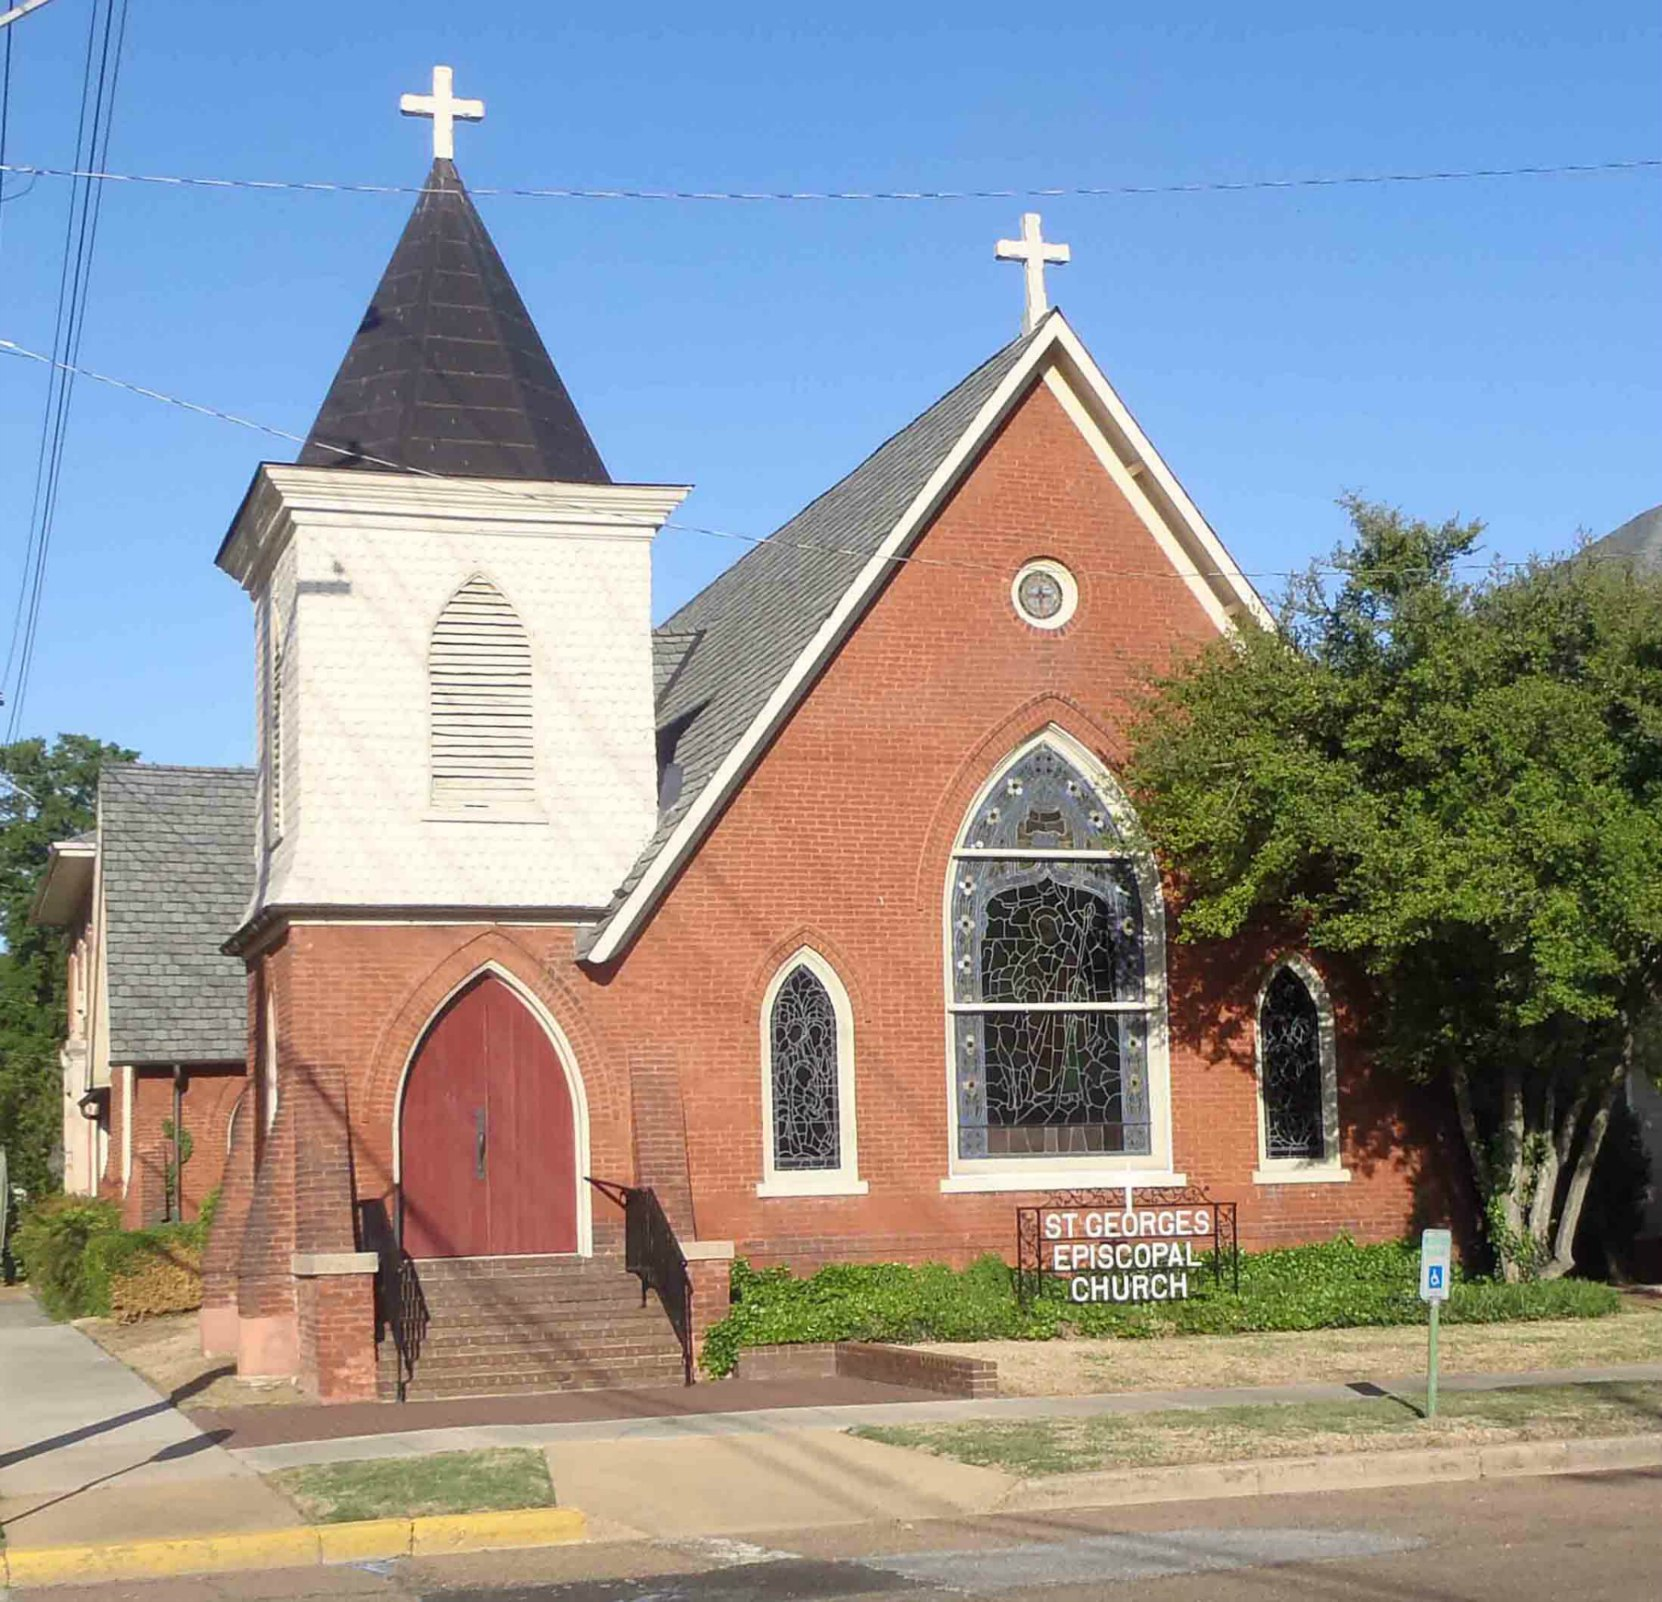 St. George's Episcopal Church, Clarksdale, Mississippi. Tennessee Williams' grandfather was Rector of this church.